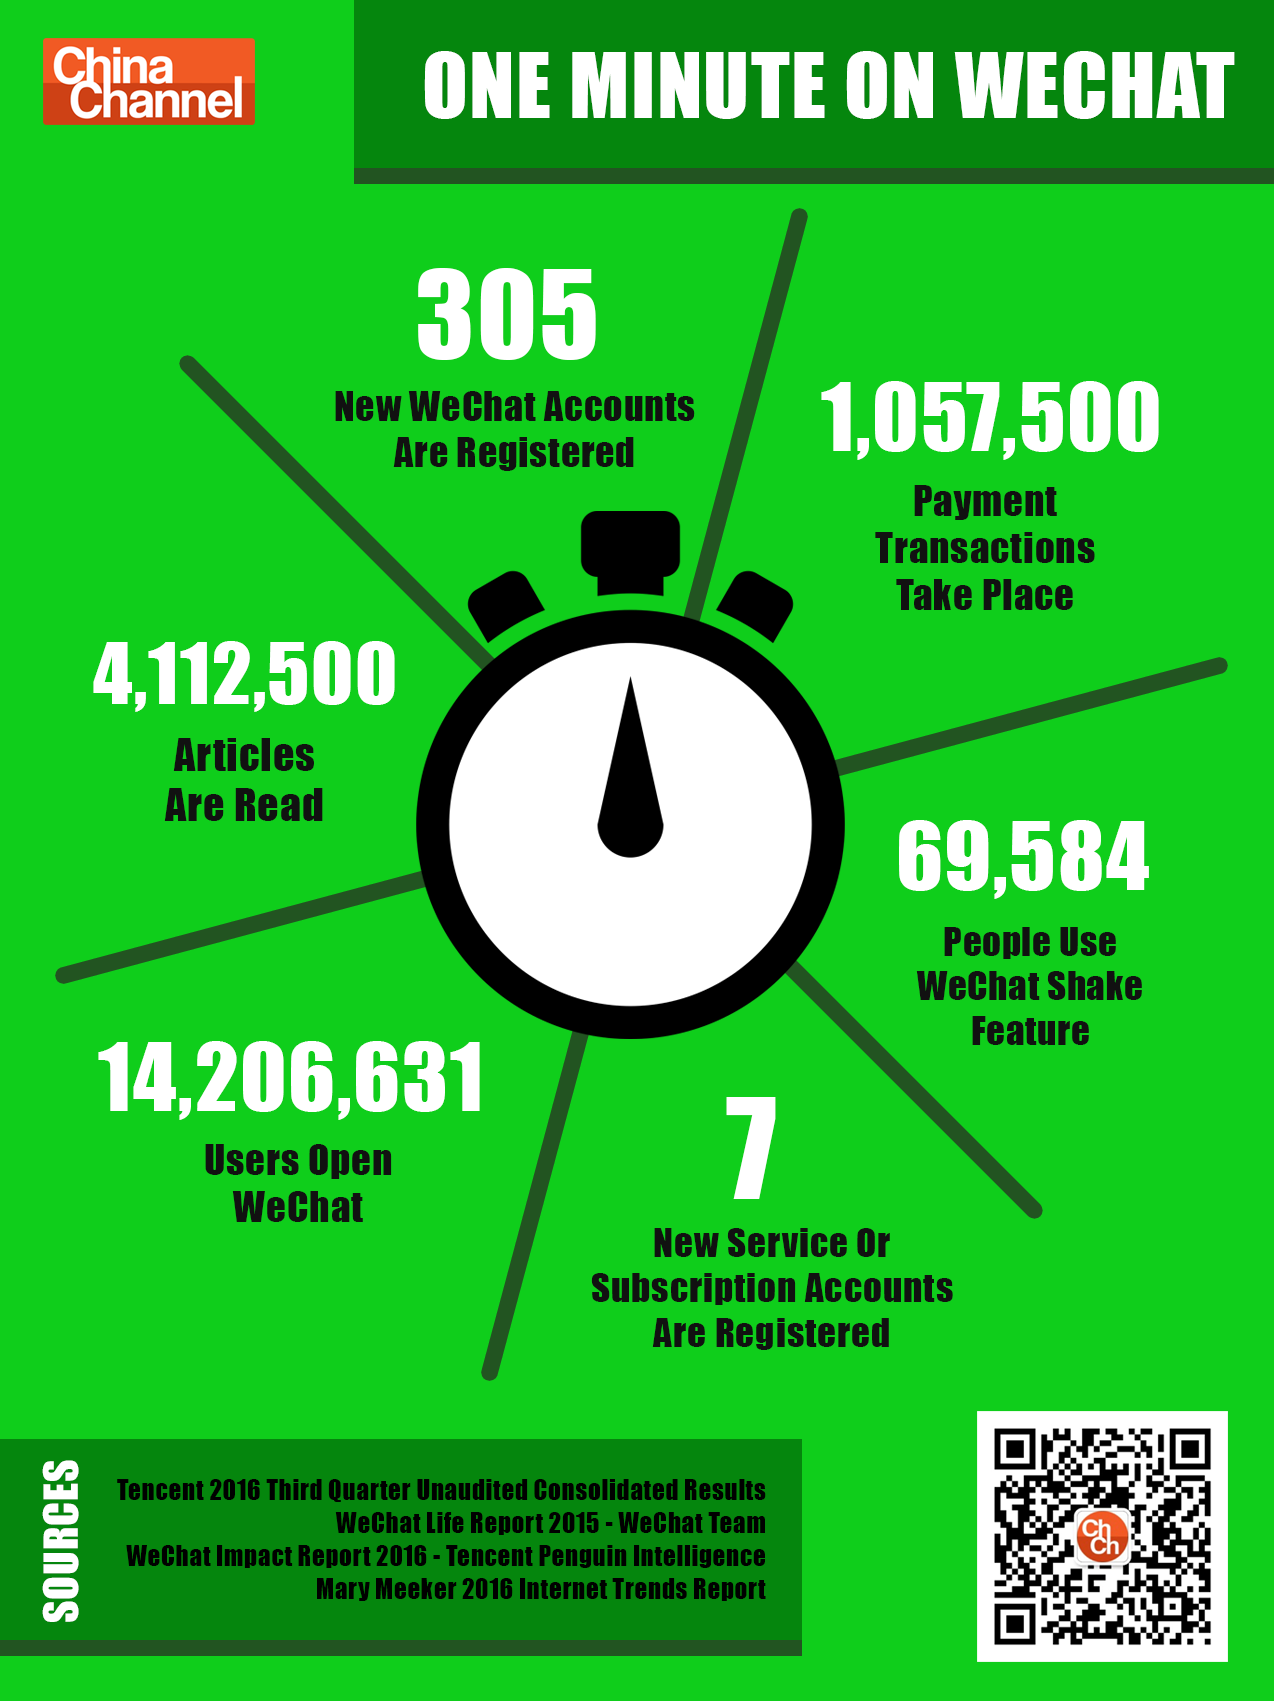 What Happens In 1 Minute On WeChat Stats